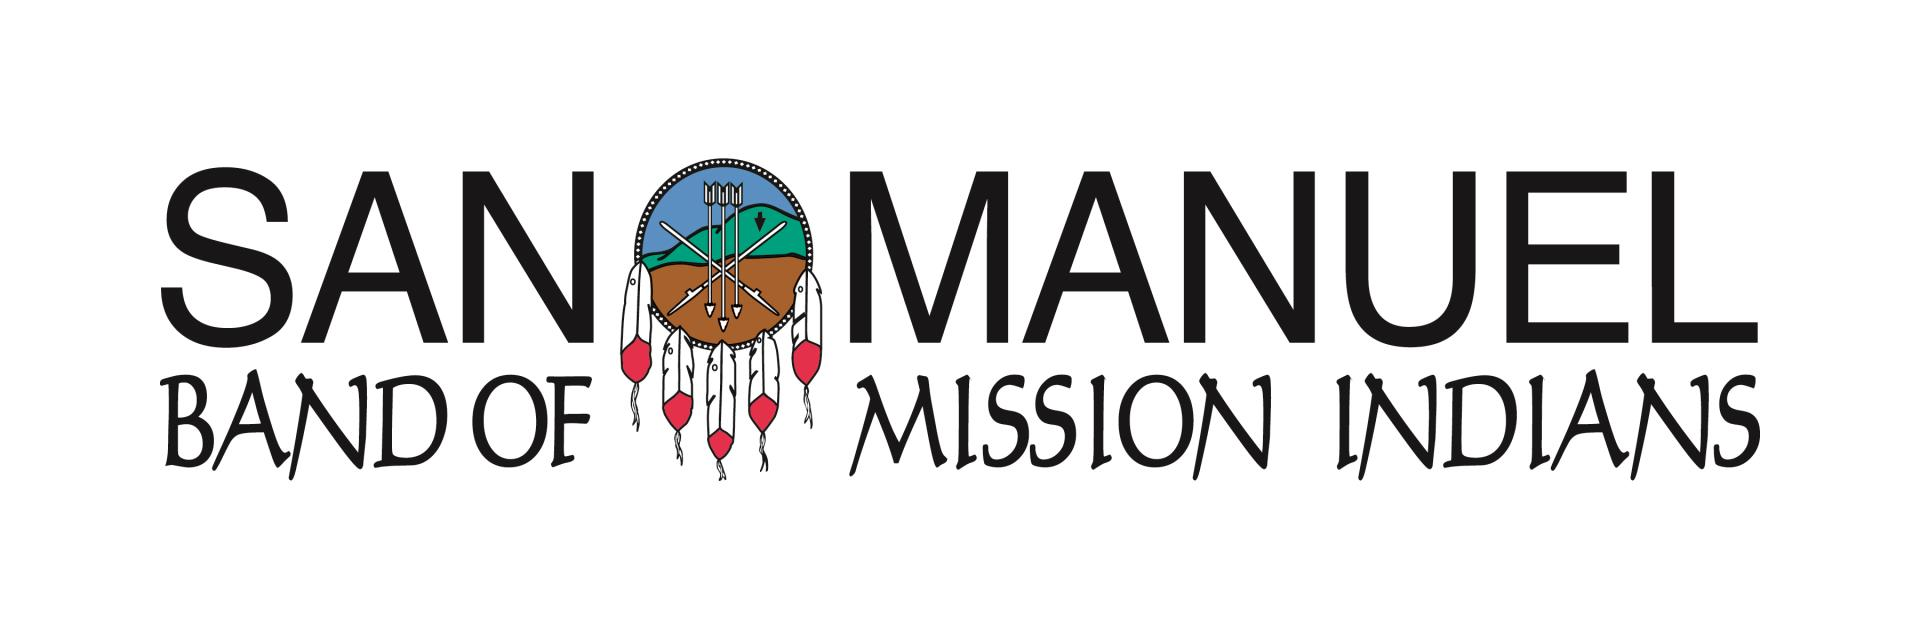 San Manuel Band of Mission Indians- FULL COLOR BLACK